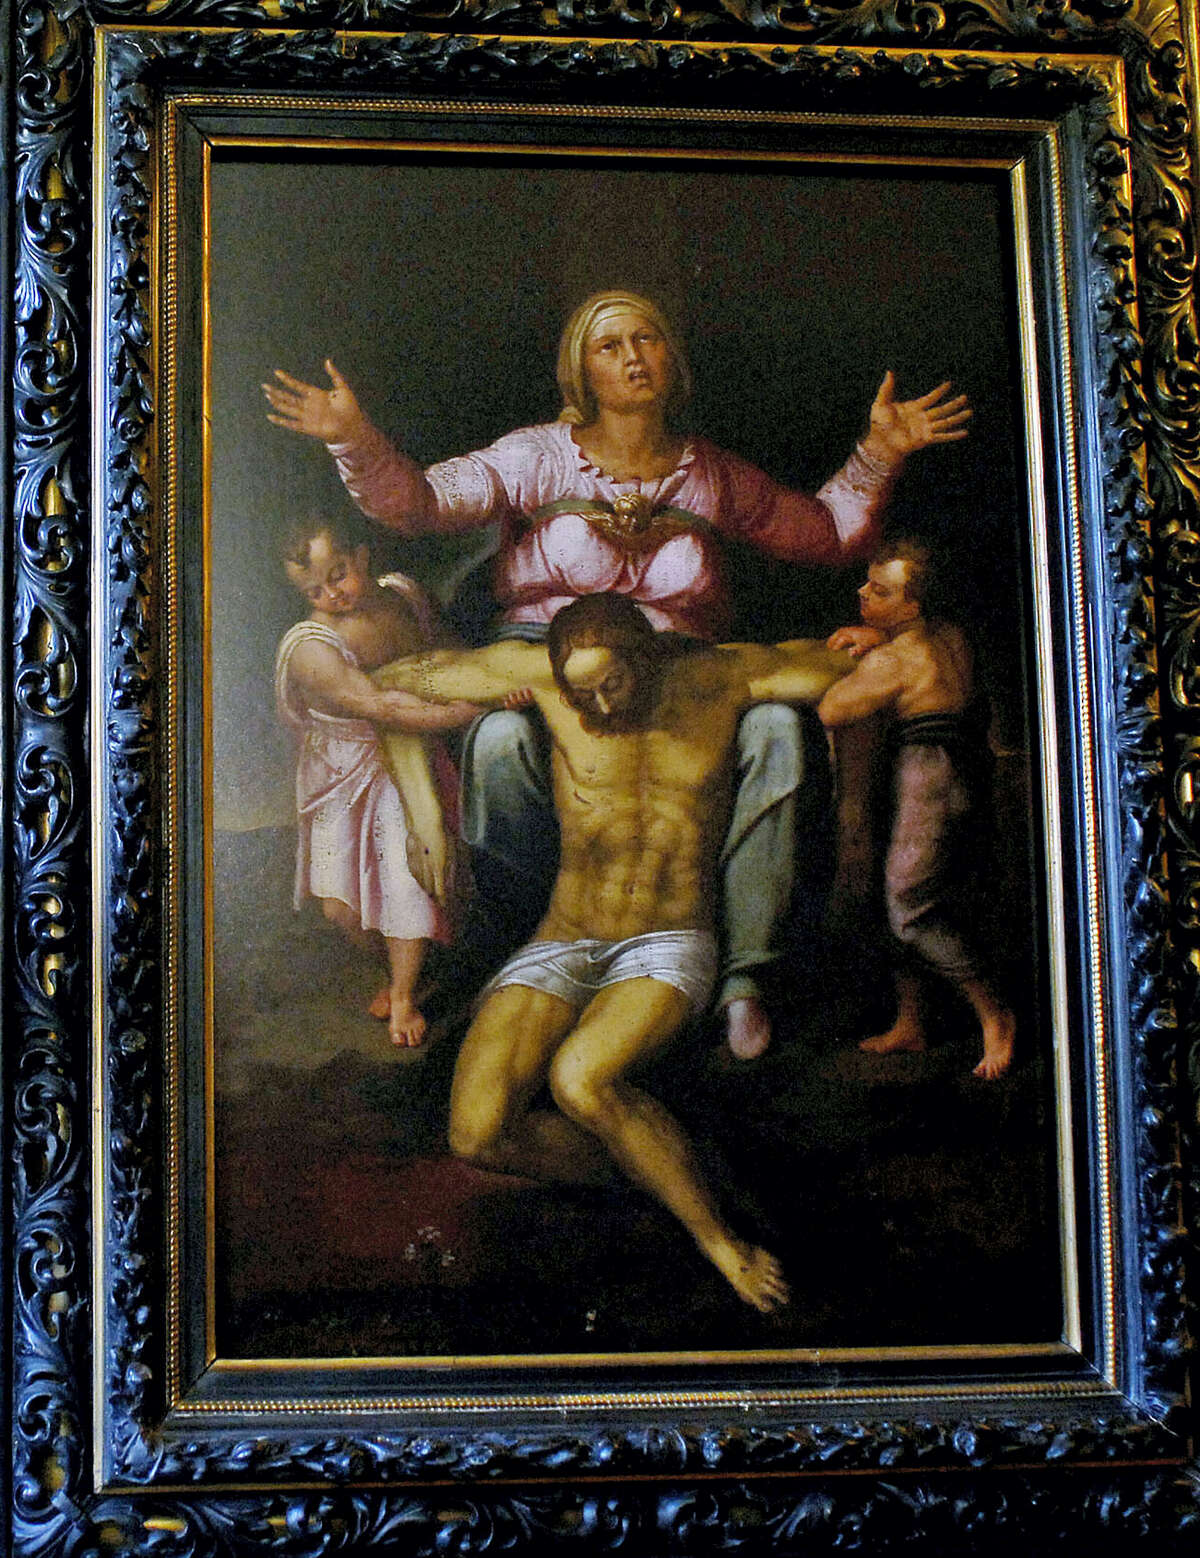 In this Oct. 13, 2010, file photo, a framed copy of a painting, believed by its owner to be the work of Michelangelo in the 16th century, is displayed by Martin Kober in his Tonawanda, N.Y, home. Kober expected skepticism when he set out to prove that a painting that hung in his boyhood home in upstate New York really is an authentic Michelangelo worth as much as $300 million. What he didn't anticipate was the art world's continued reluctance to consider the possibility after spending years compiling forensic and documentary evidence.